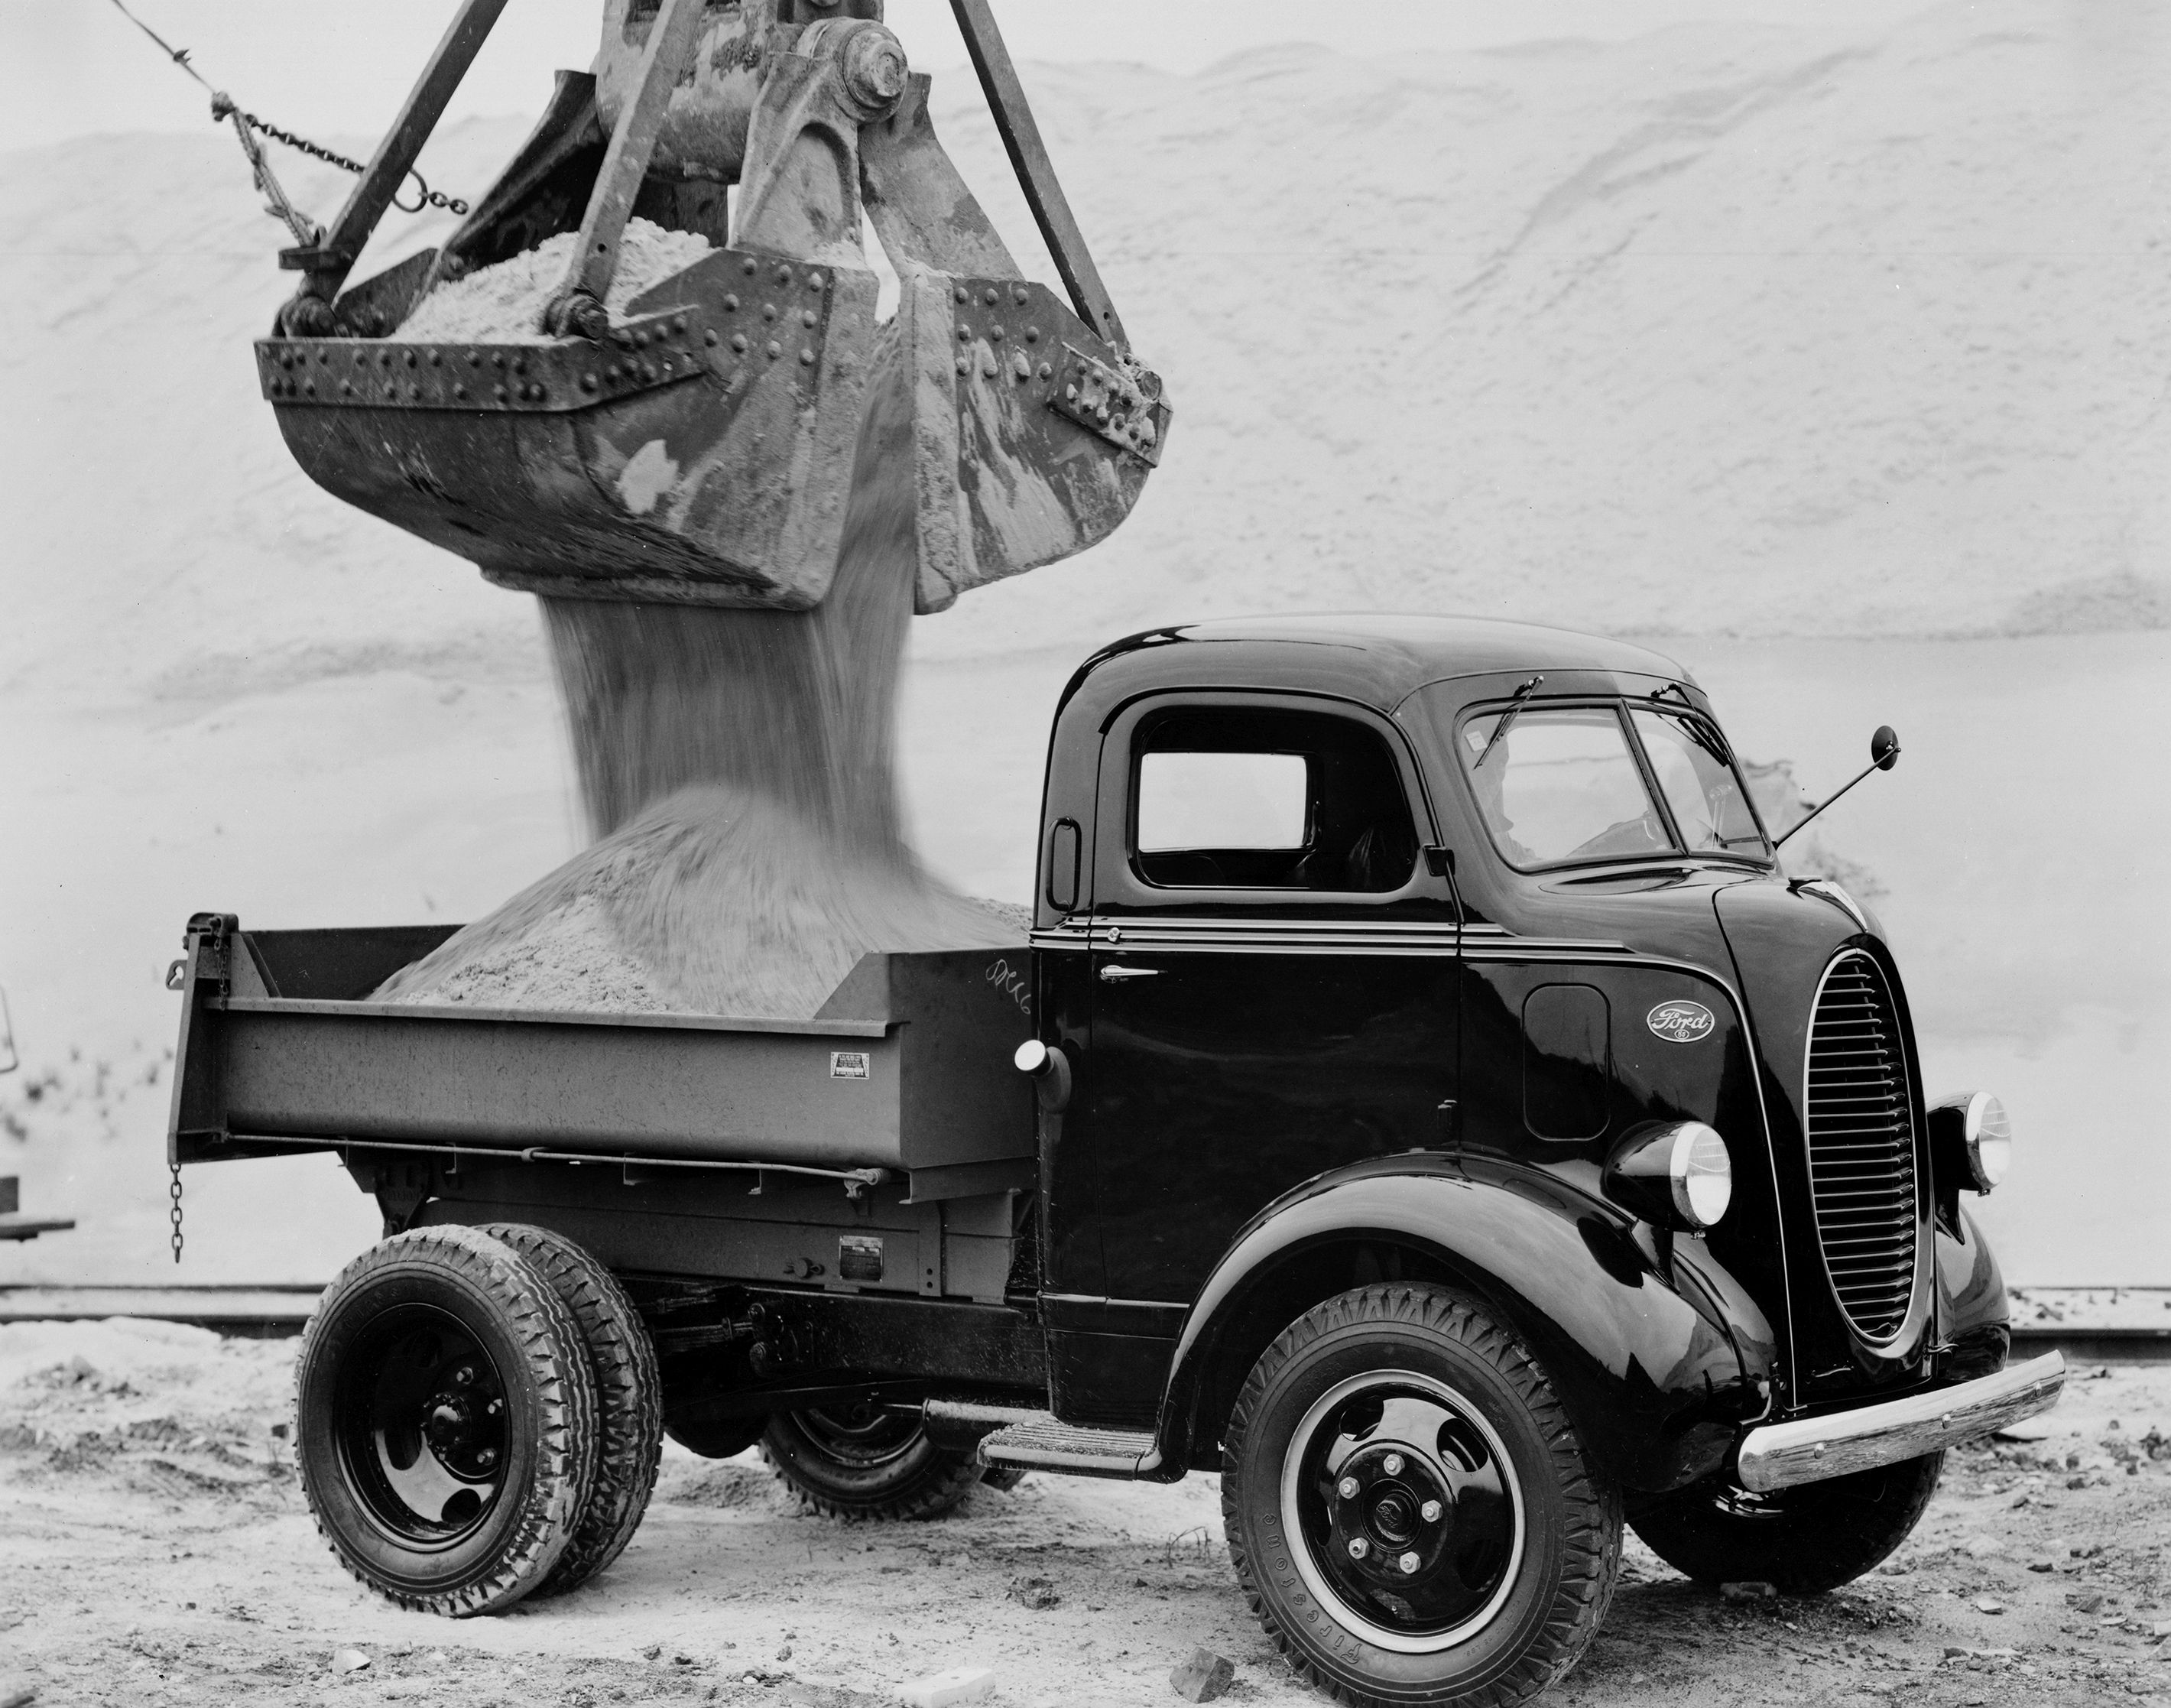 1939-Ford-Cab-Over-Engine-dump-truck-neg-70912.jpg